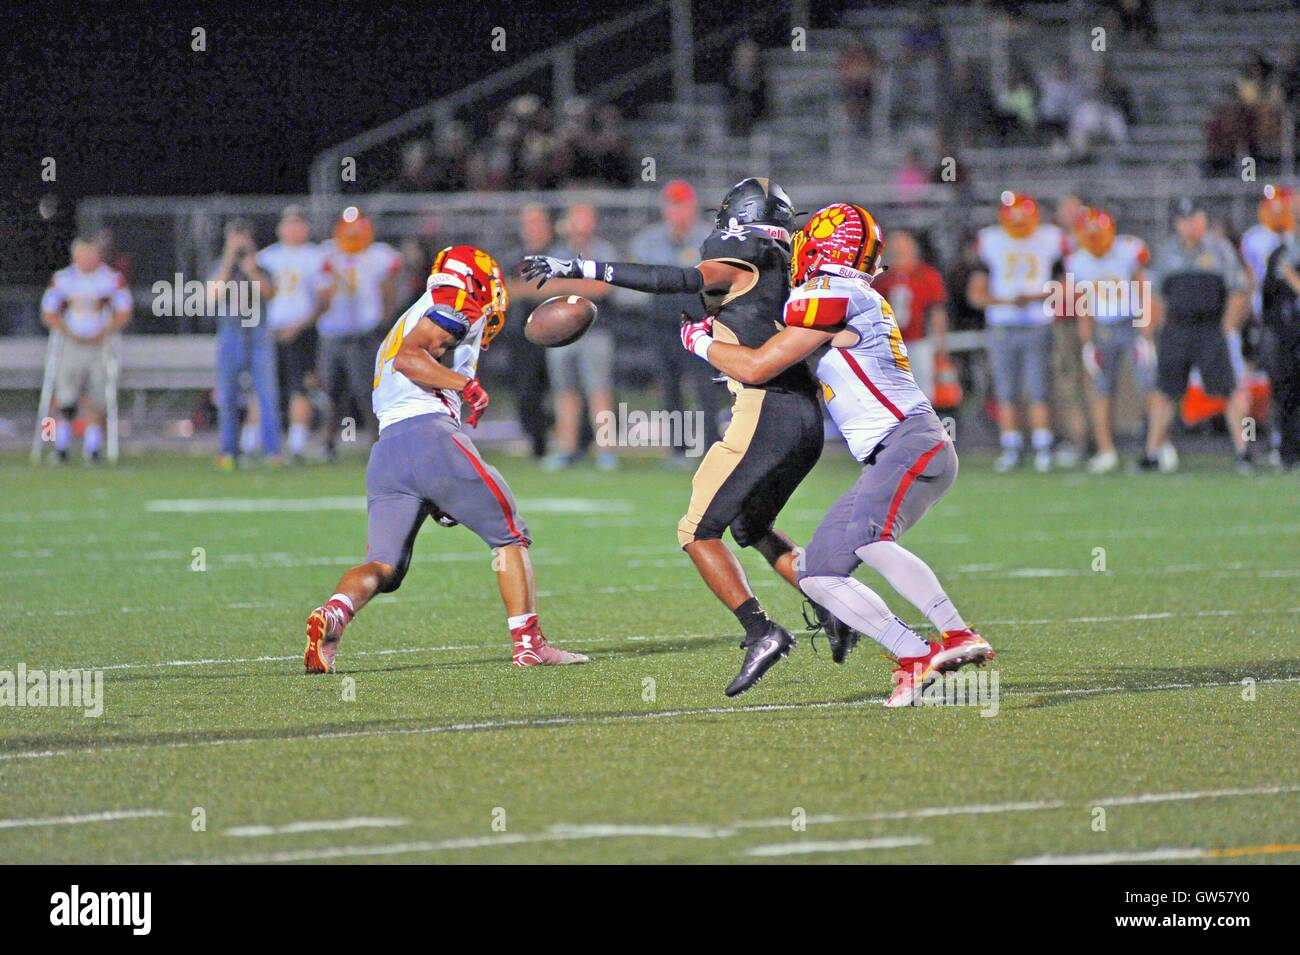 Pass receiver has a pass broken up in the midst of double coverage during a high school football game. USA. - Stock Image